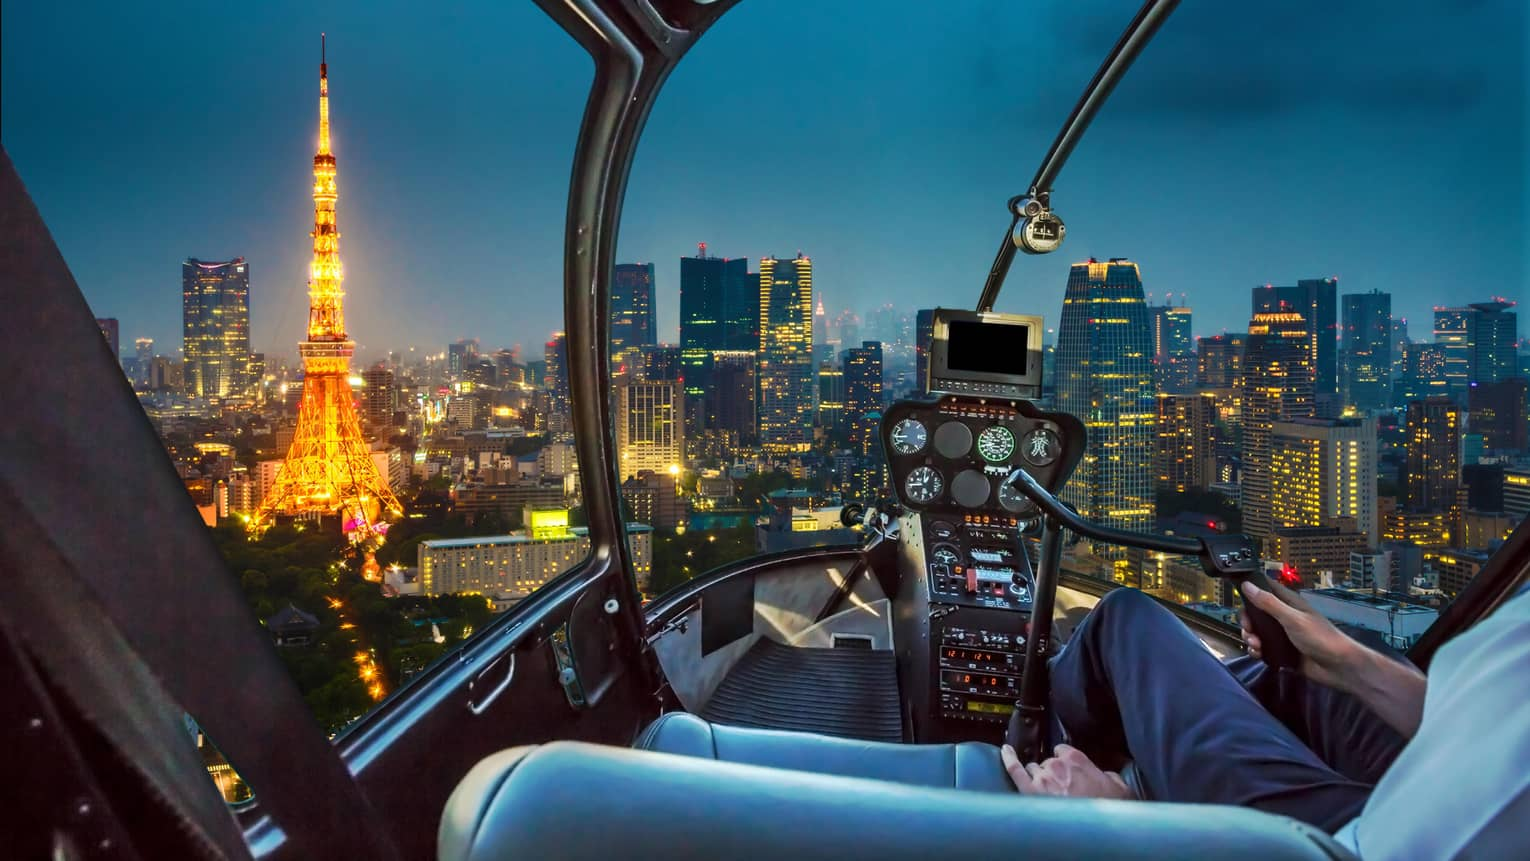 Helicopter looks over Tokyo city at night, Tokyo Tower with lights